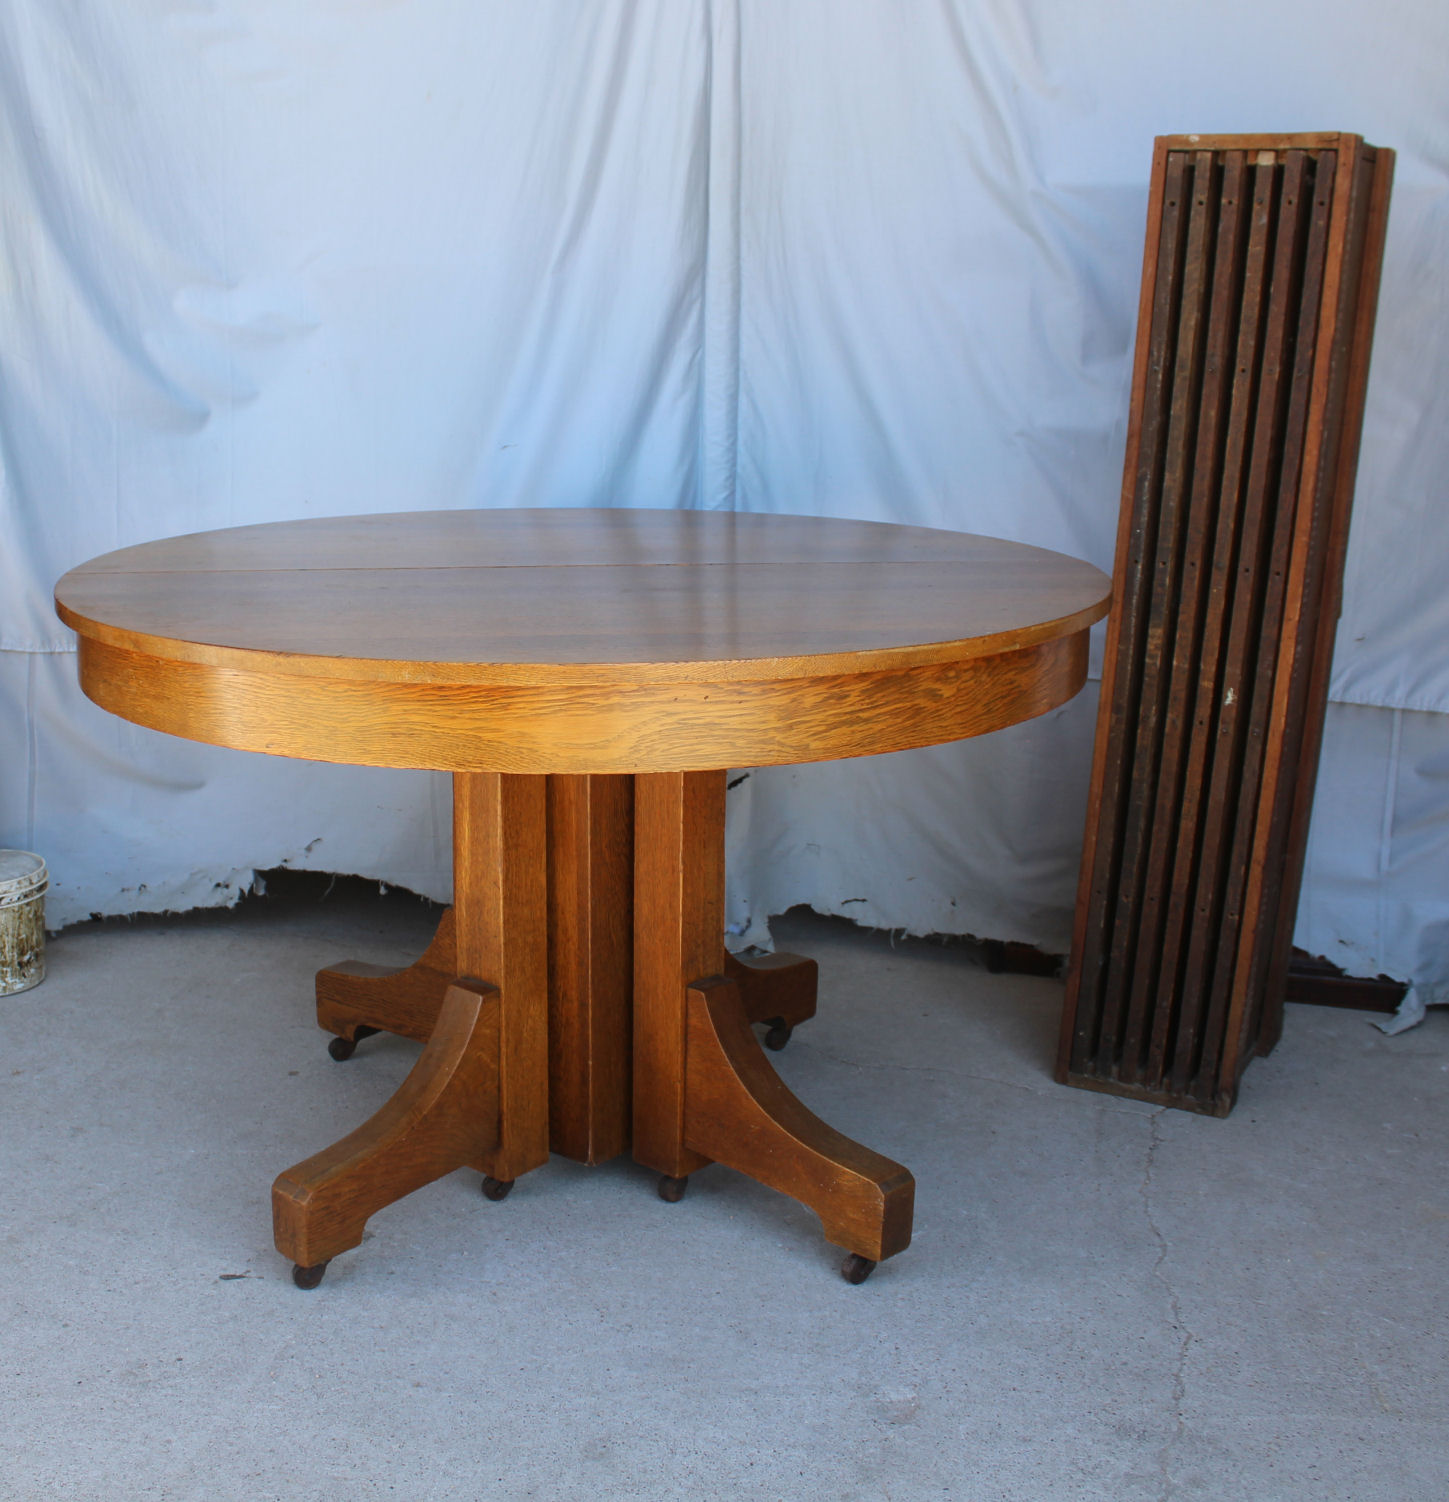 Round Oak Dining Table Antique Mission Round Oak Dining Table 6 Leaves Robbins Table